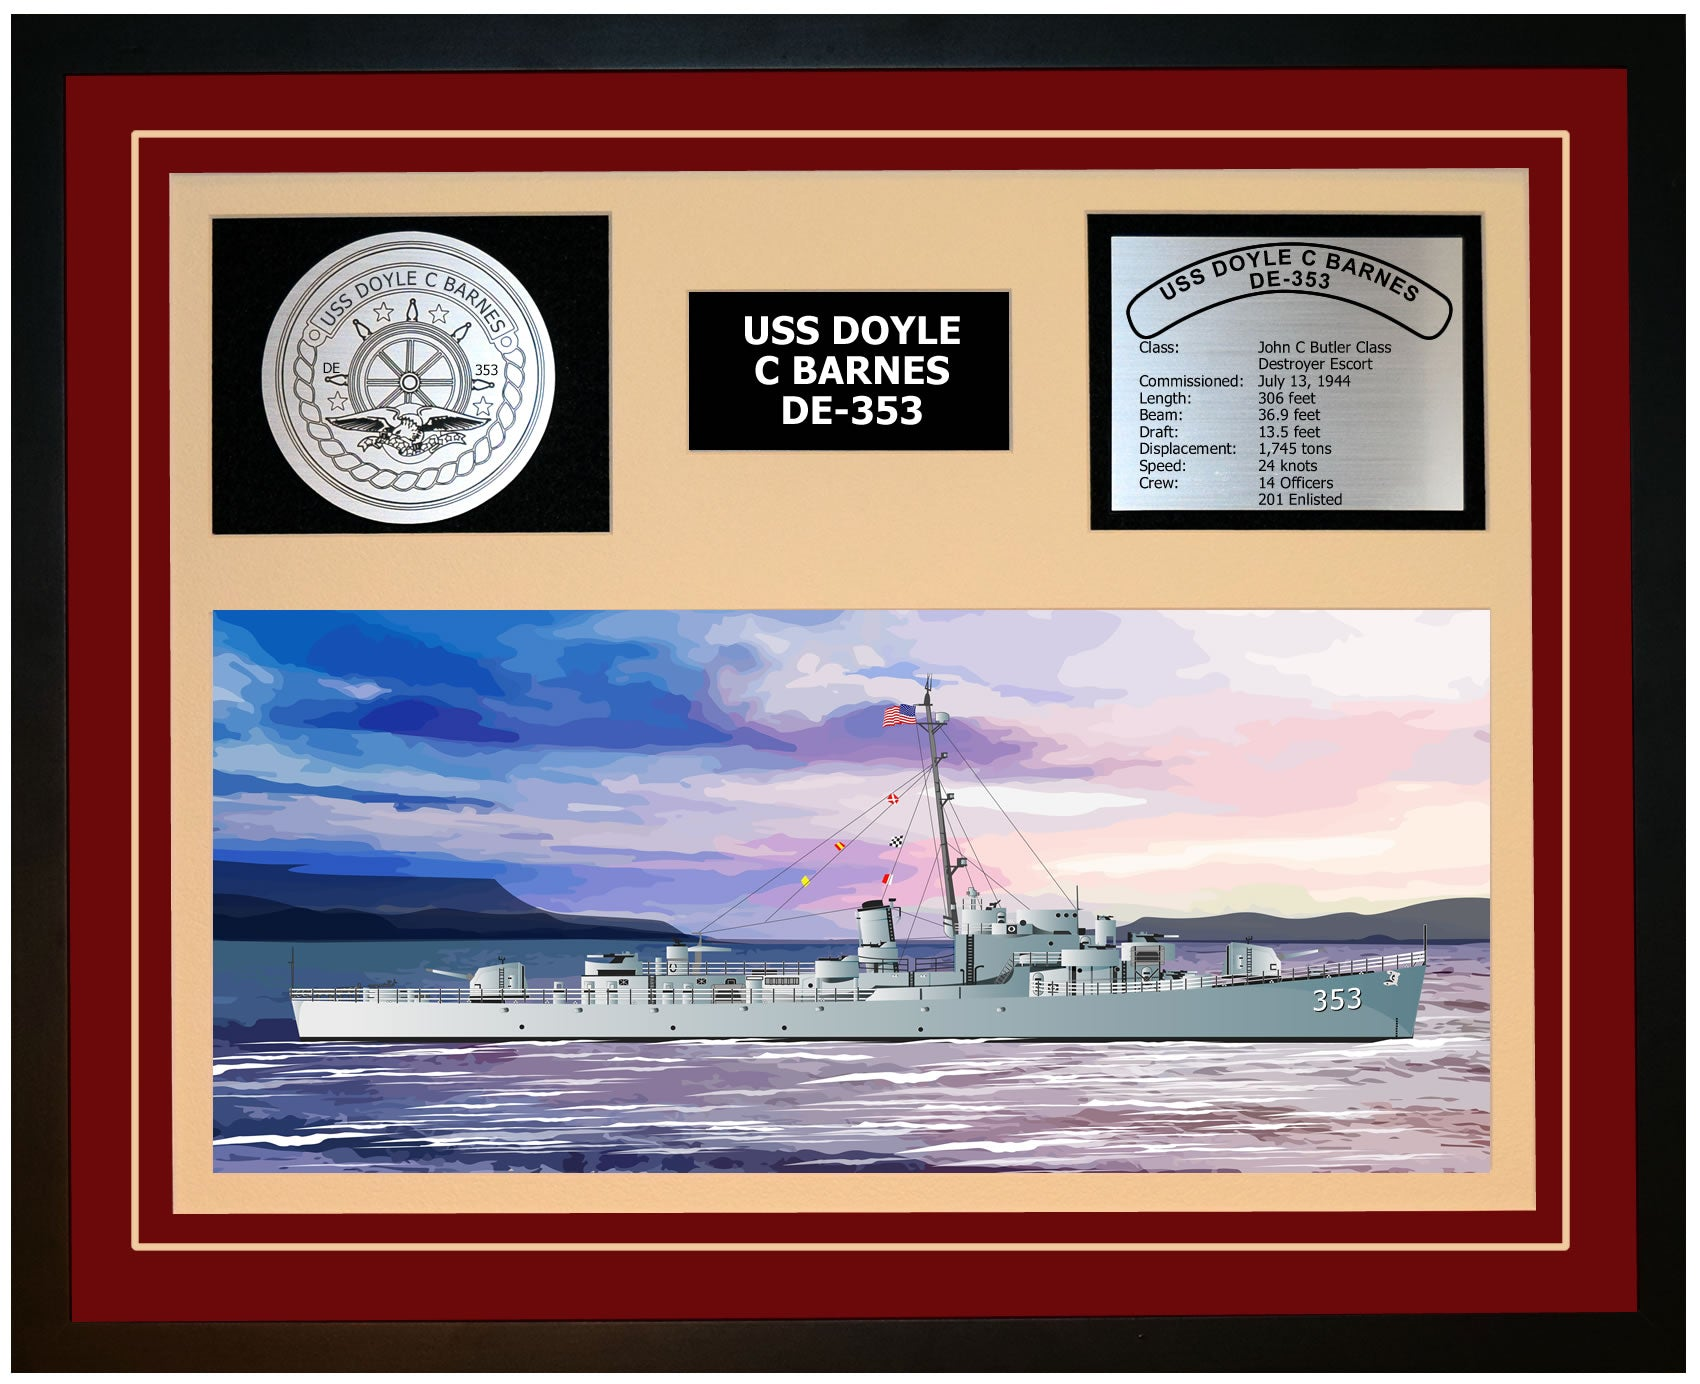 USS DOYLE C BARNES DE-353 Framed Navy Ship Display Burgundy